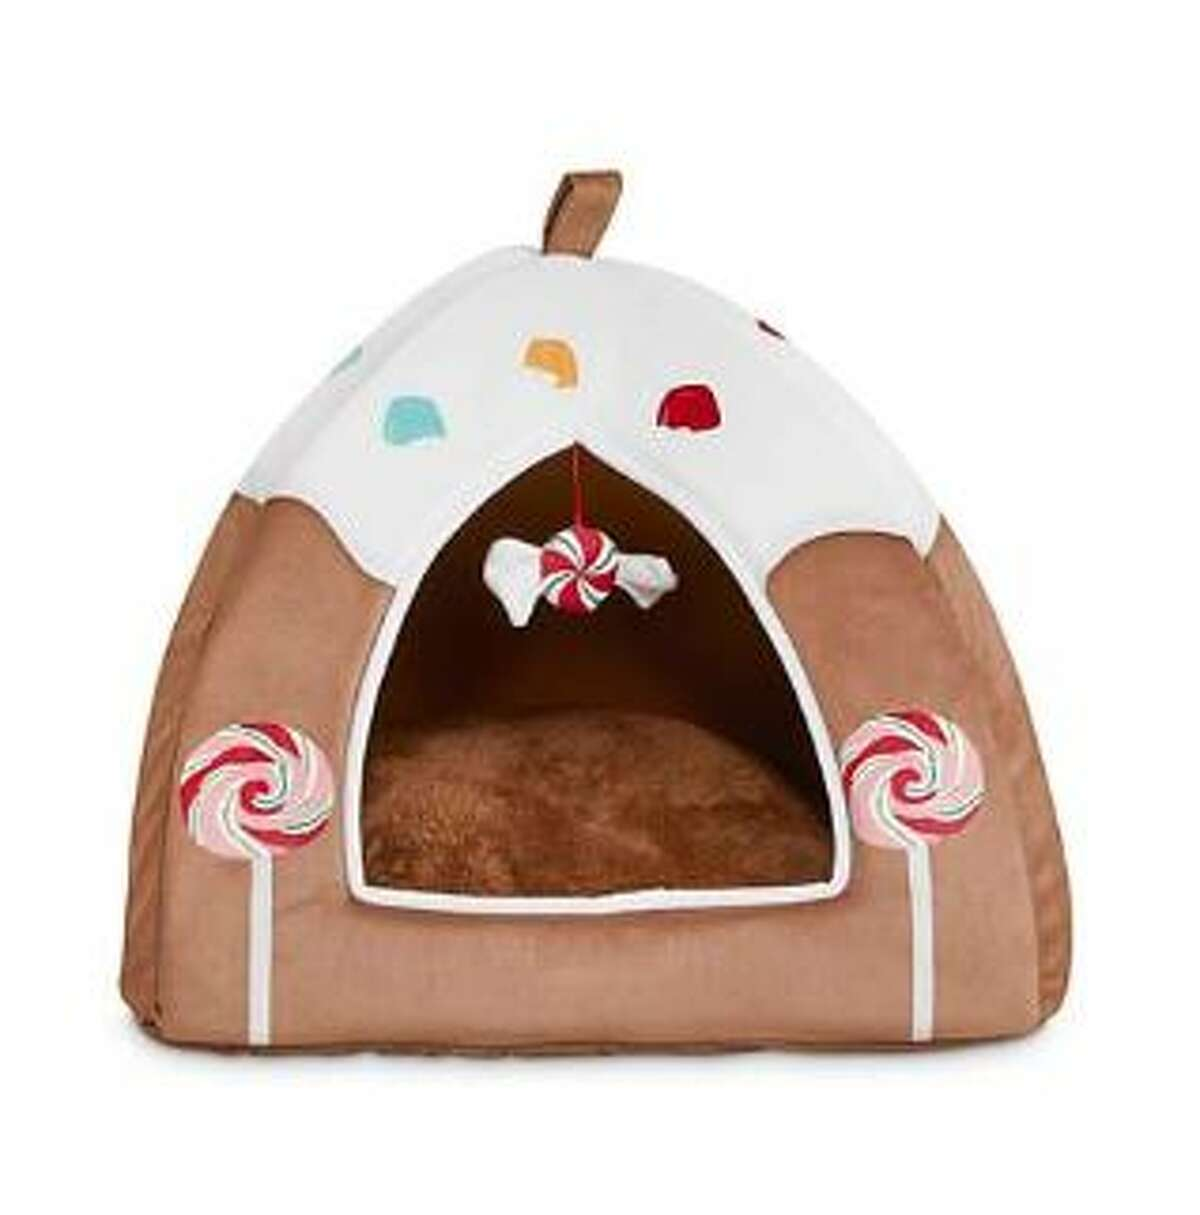 A gingerbread house cat bed from Petco: $15